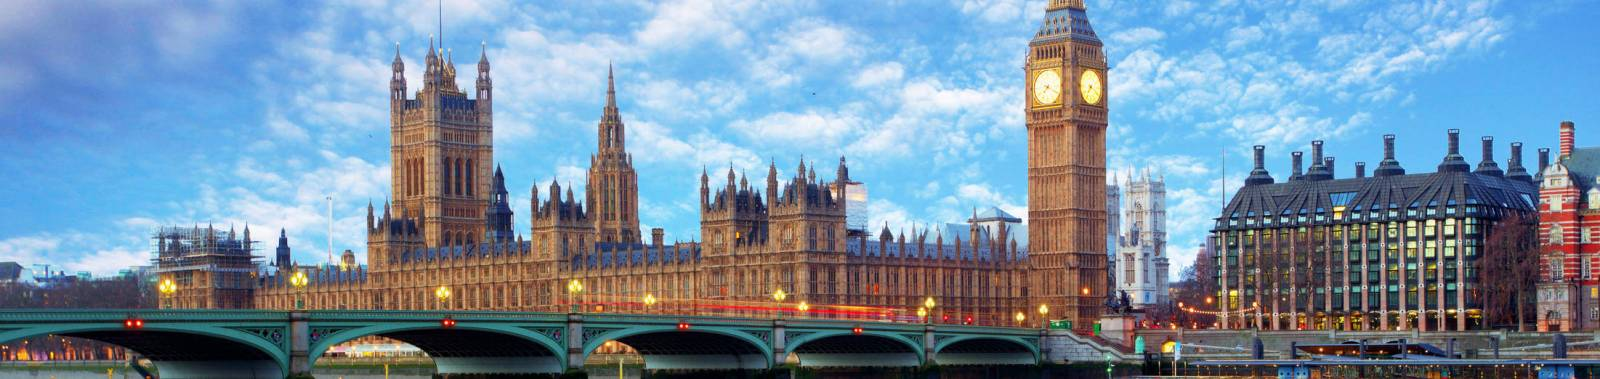 Information for your bus trip to the United Kingdom | FlixBus